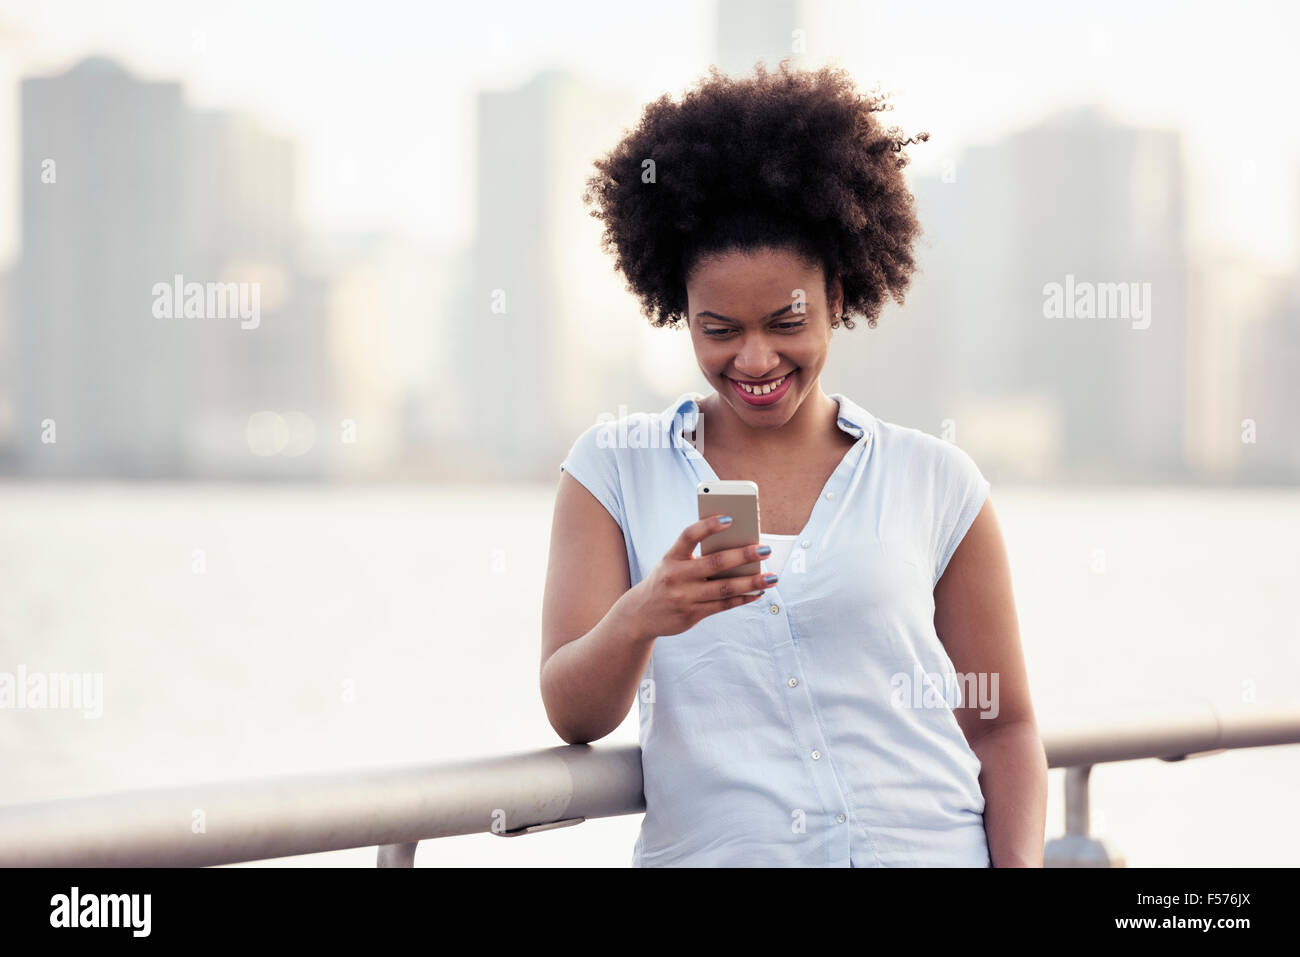 A woman leaning on a waterfront rail checking her cell phone - Stock Image